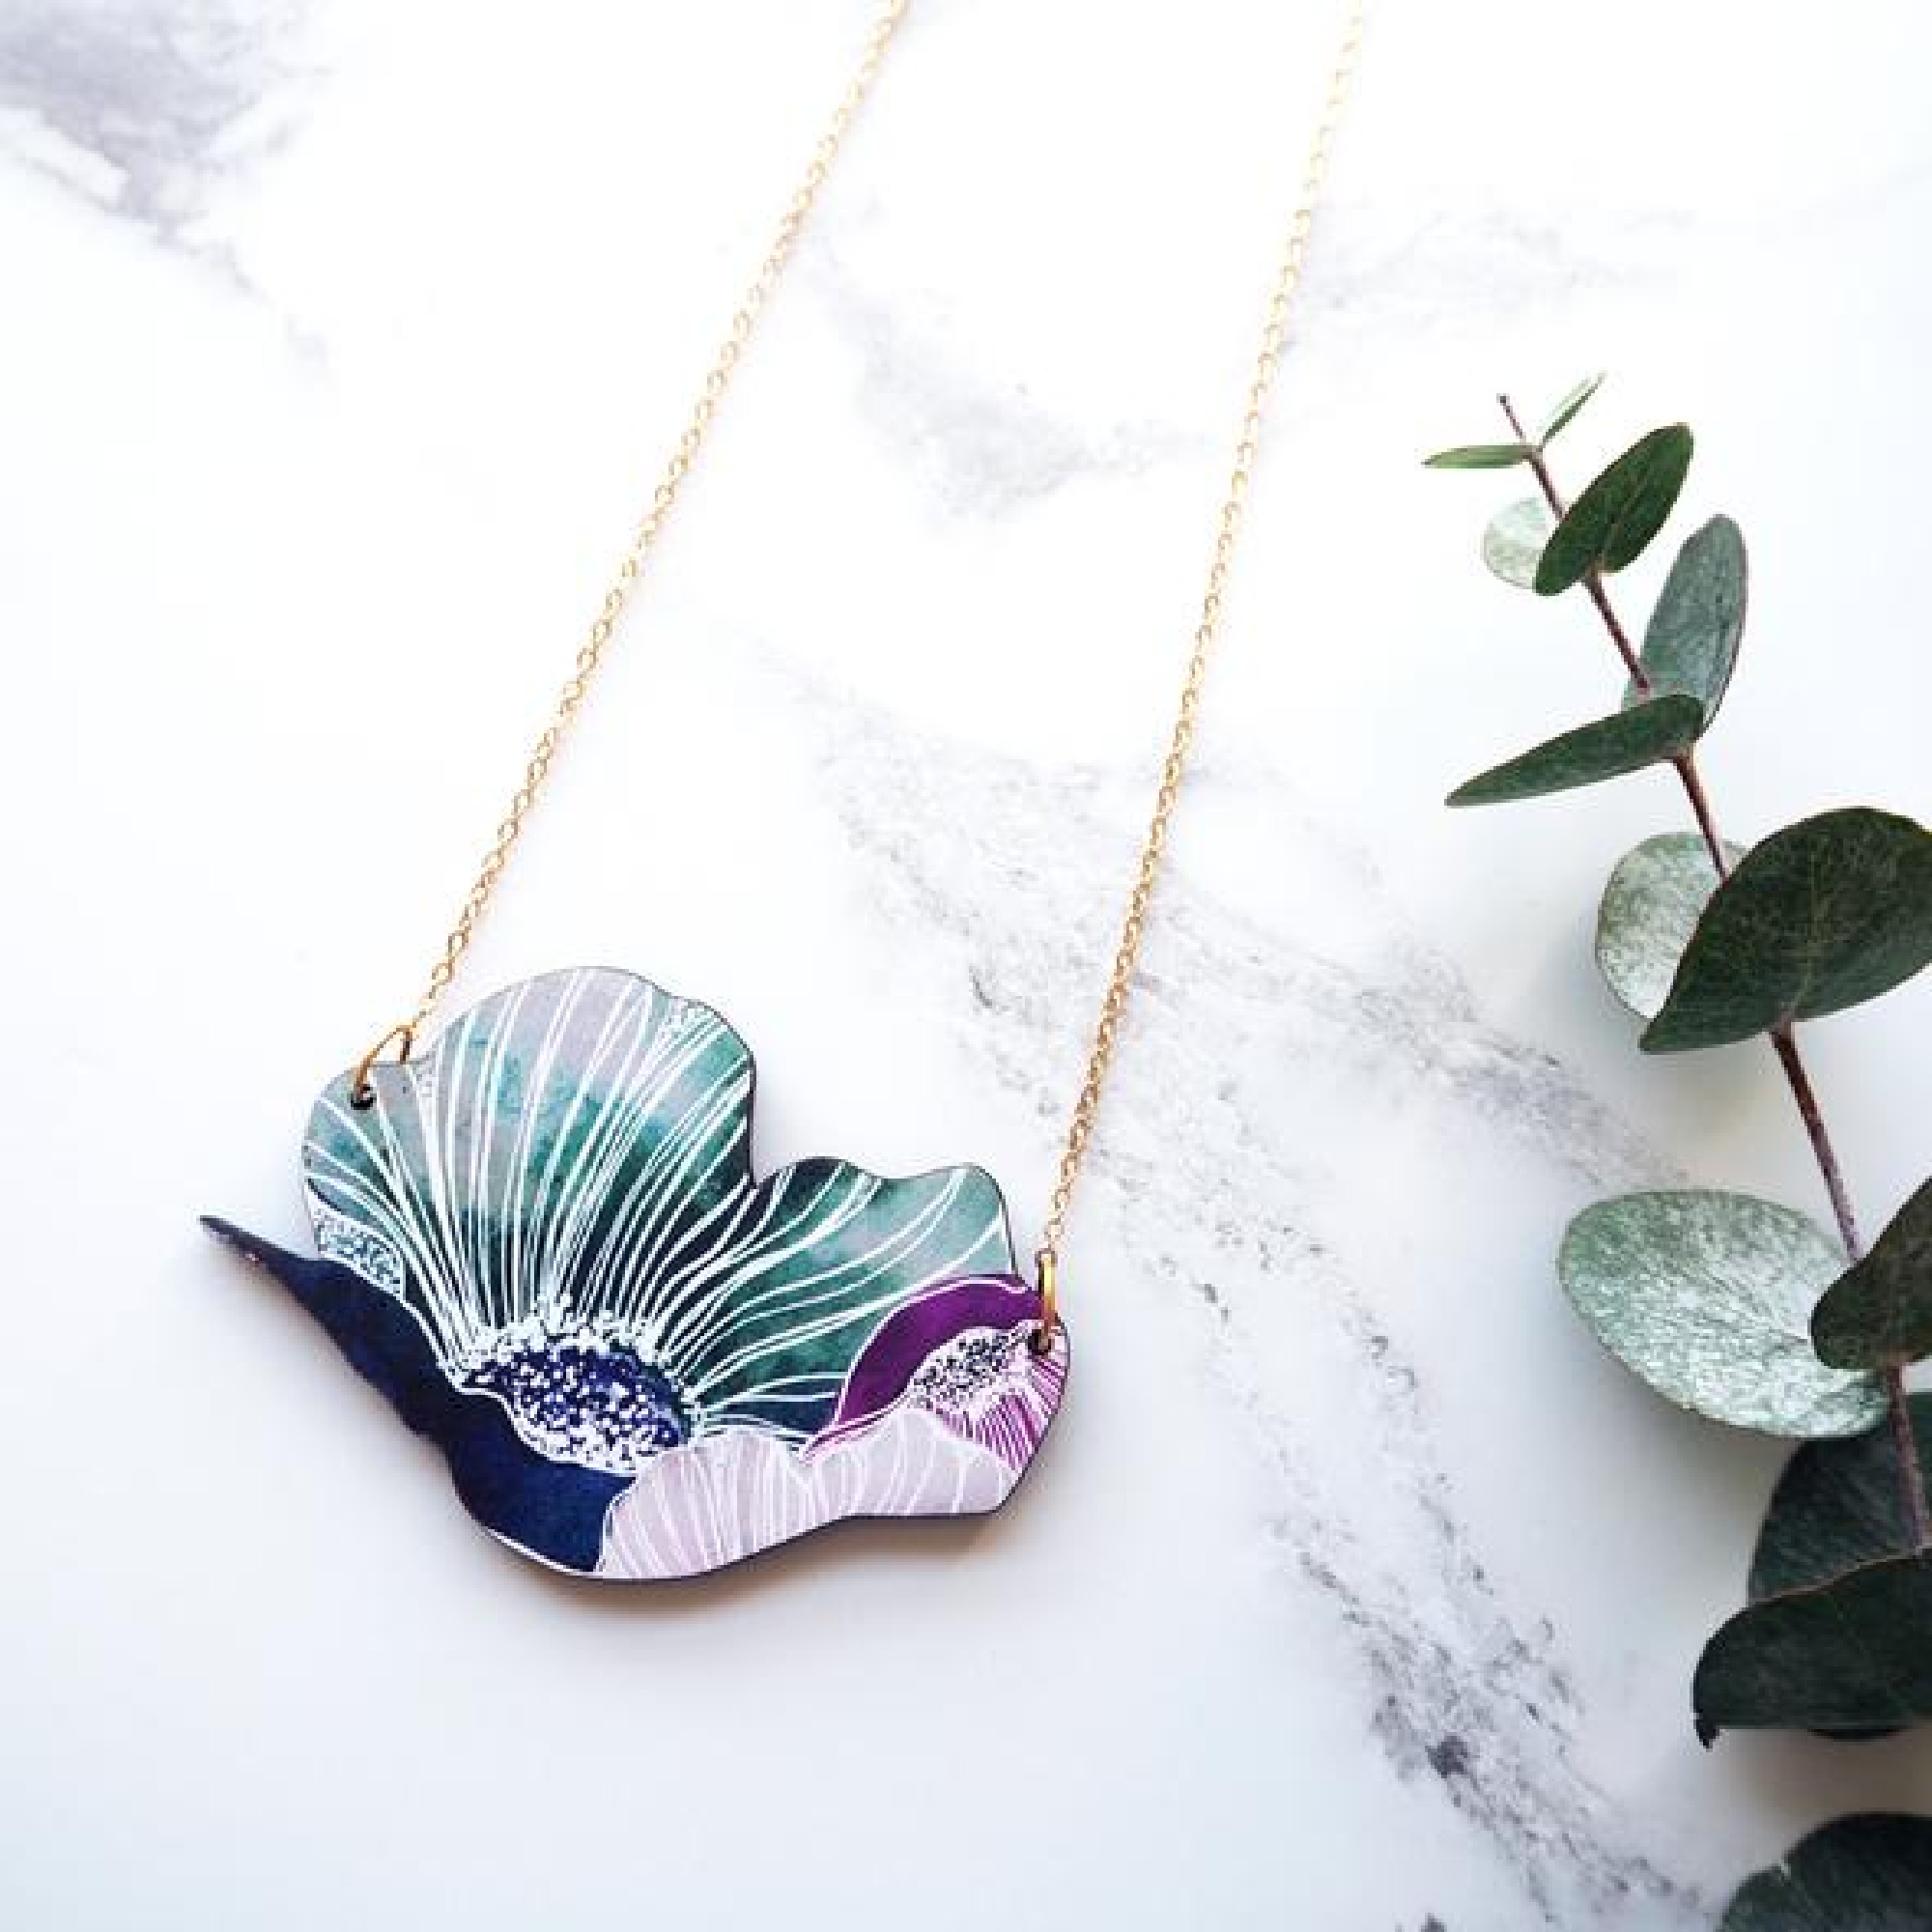 Anemone Floral Necklace by Mica Peet